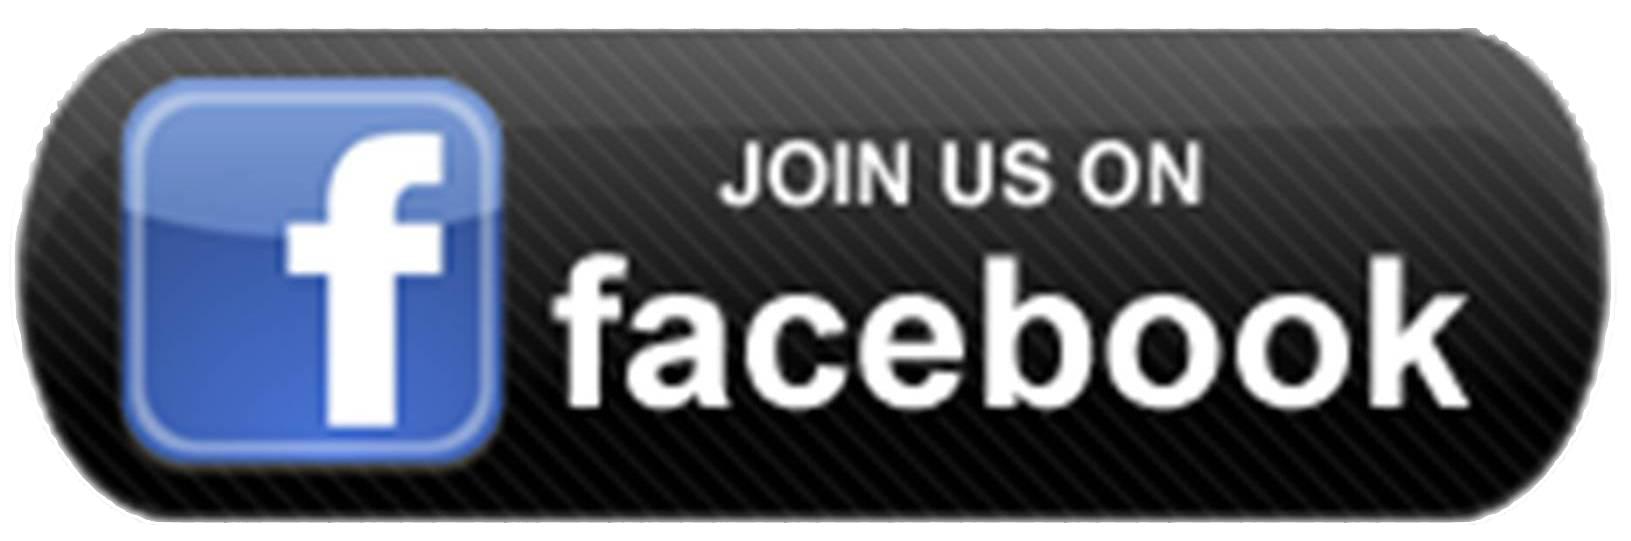 "Facebook logo with text saying ""Join us on facebook"""